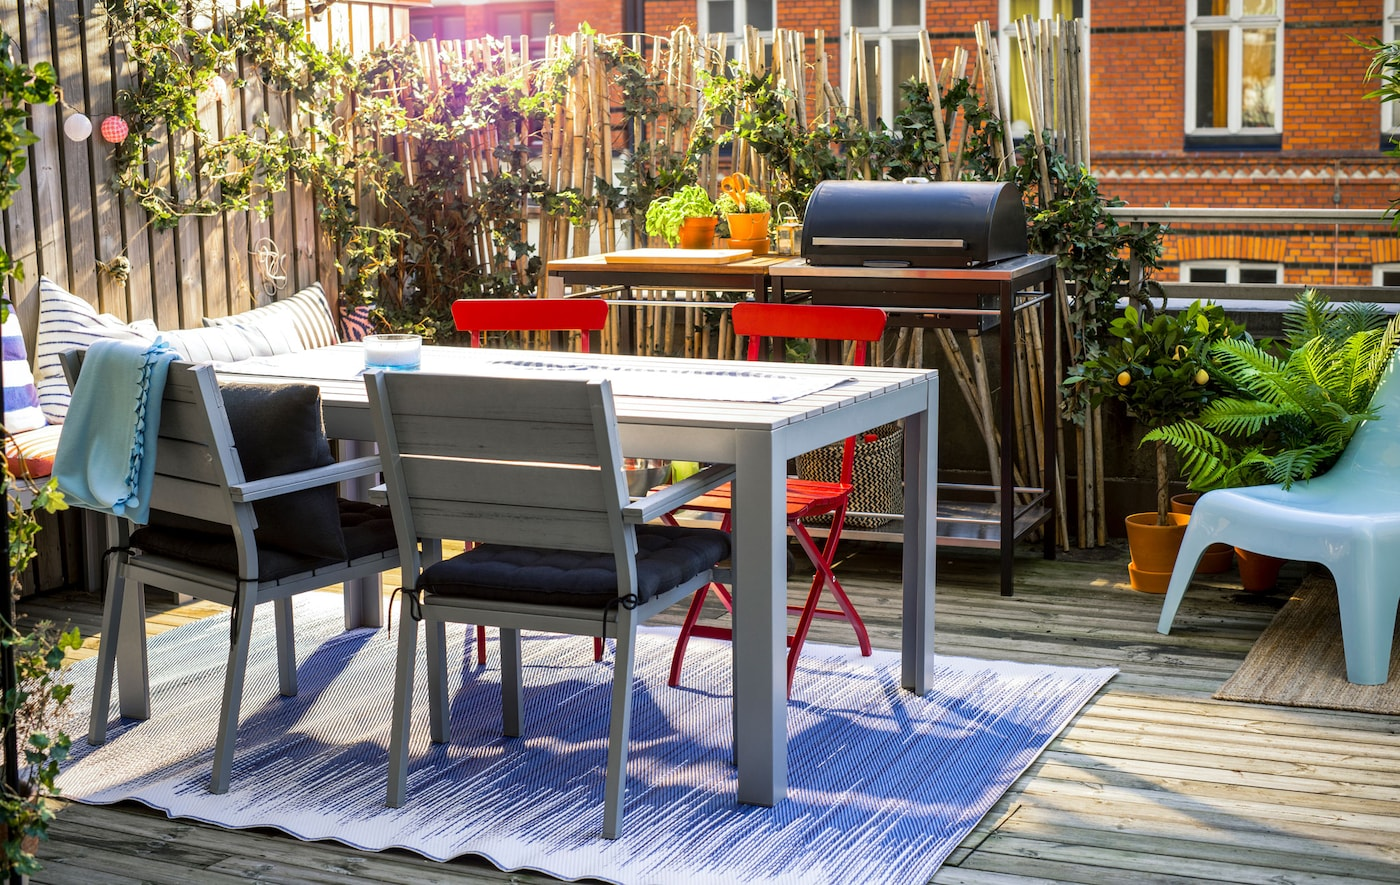 A shot of a balcony with a table and chairs, bench, grill and lots of plants.